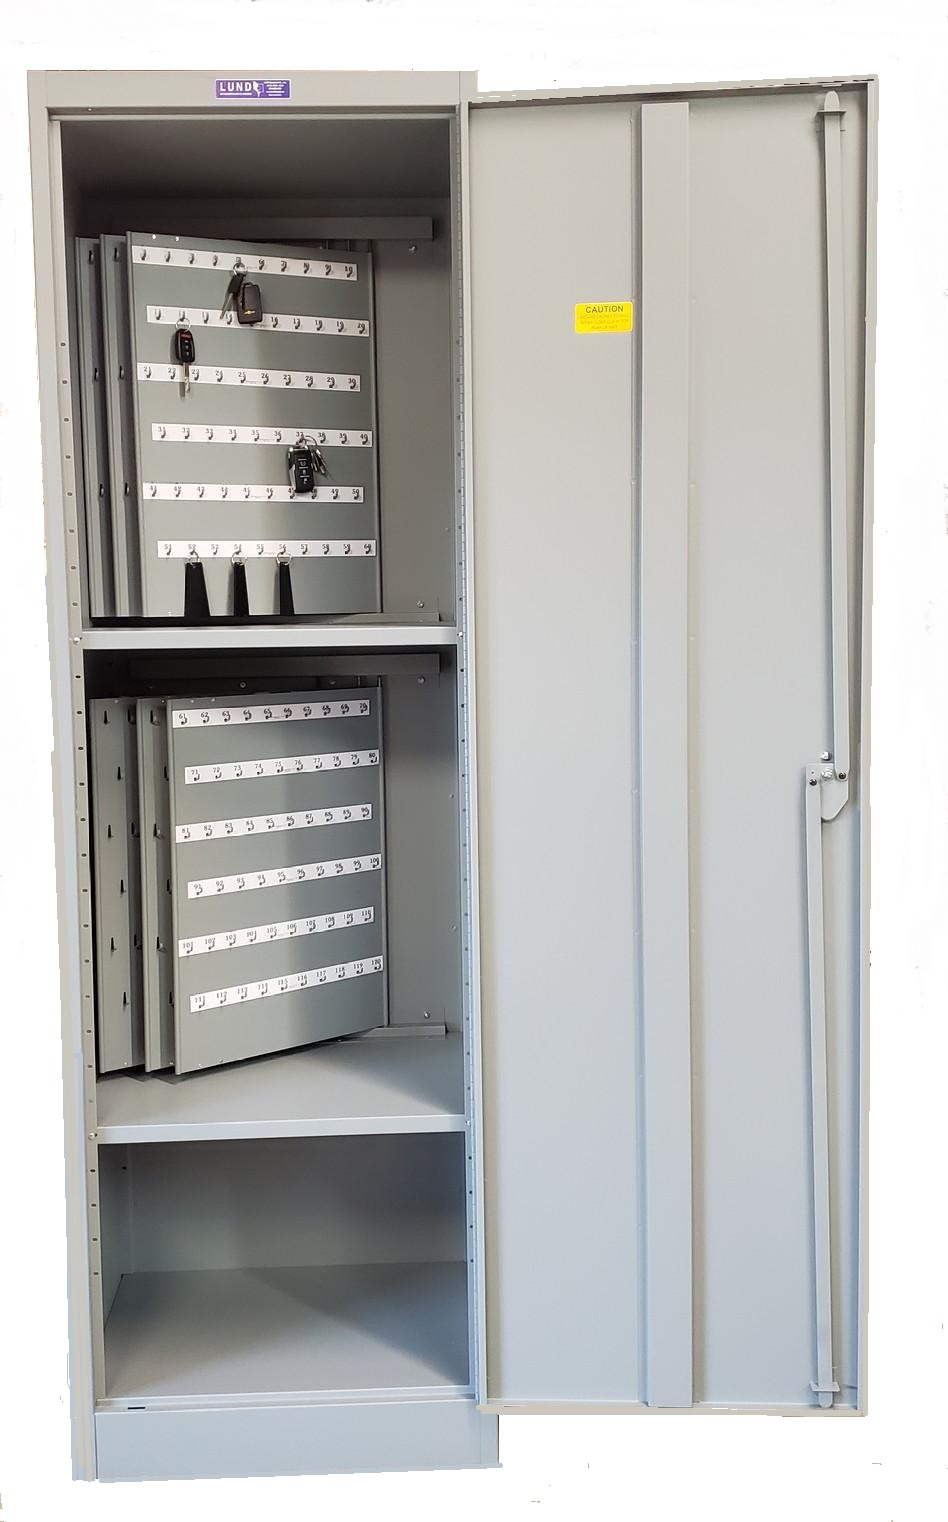 Lund Auto / Fleet 600 Key Capacity Floor Cabinet BHMA/ANSI Approved